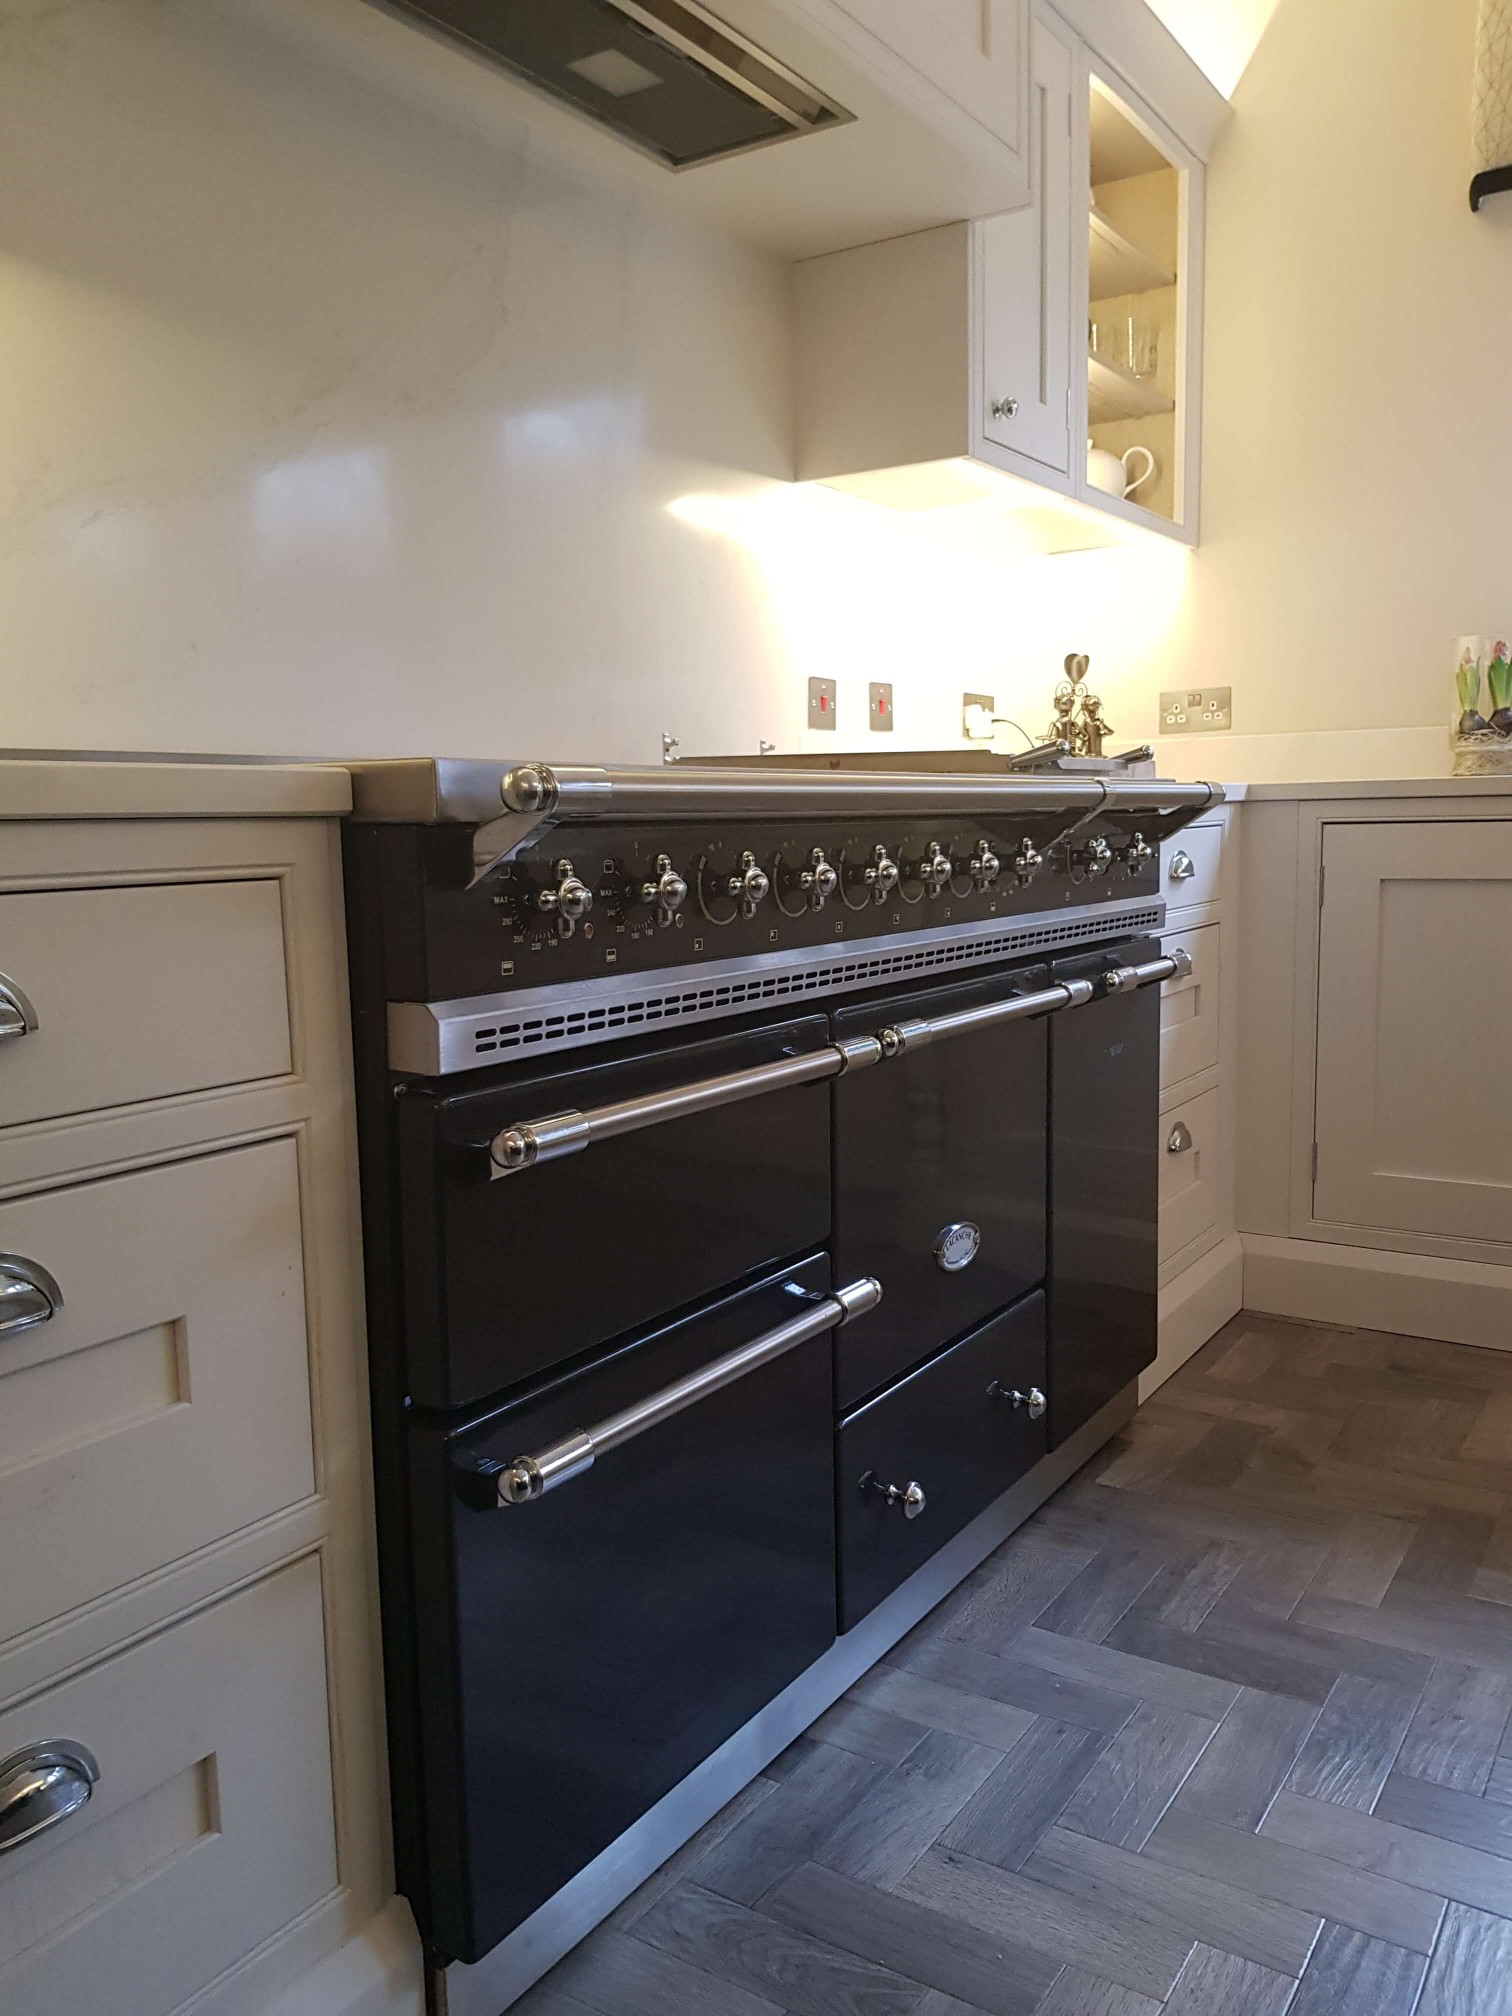 Bespoke Inframe Kitchen Range Cooker Glasgow